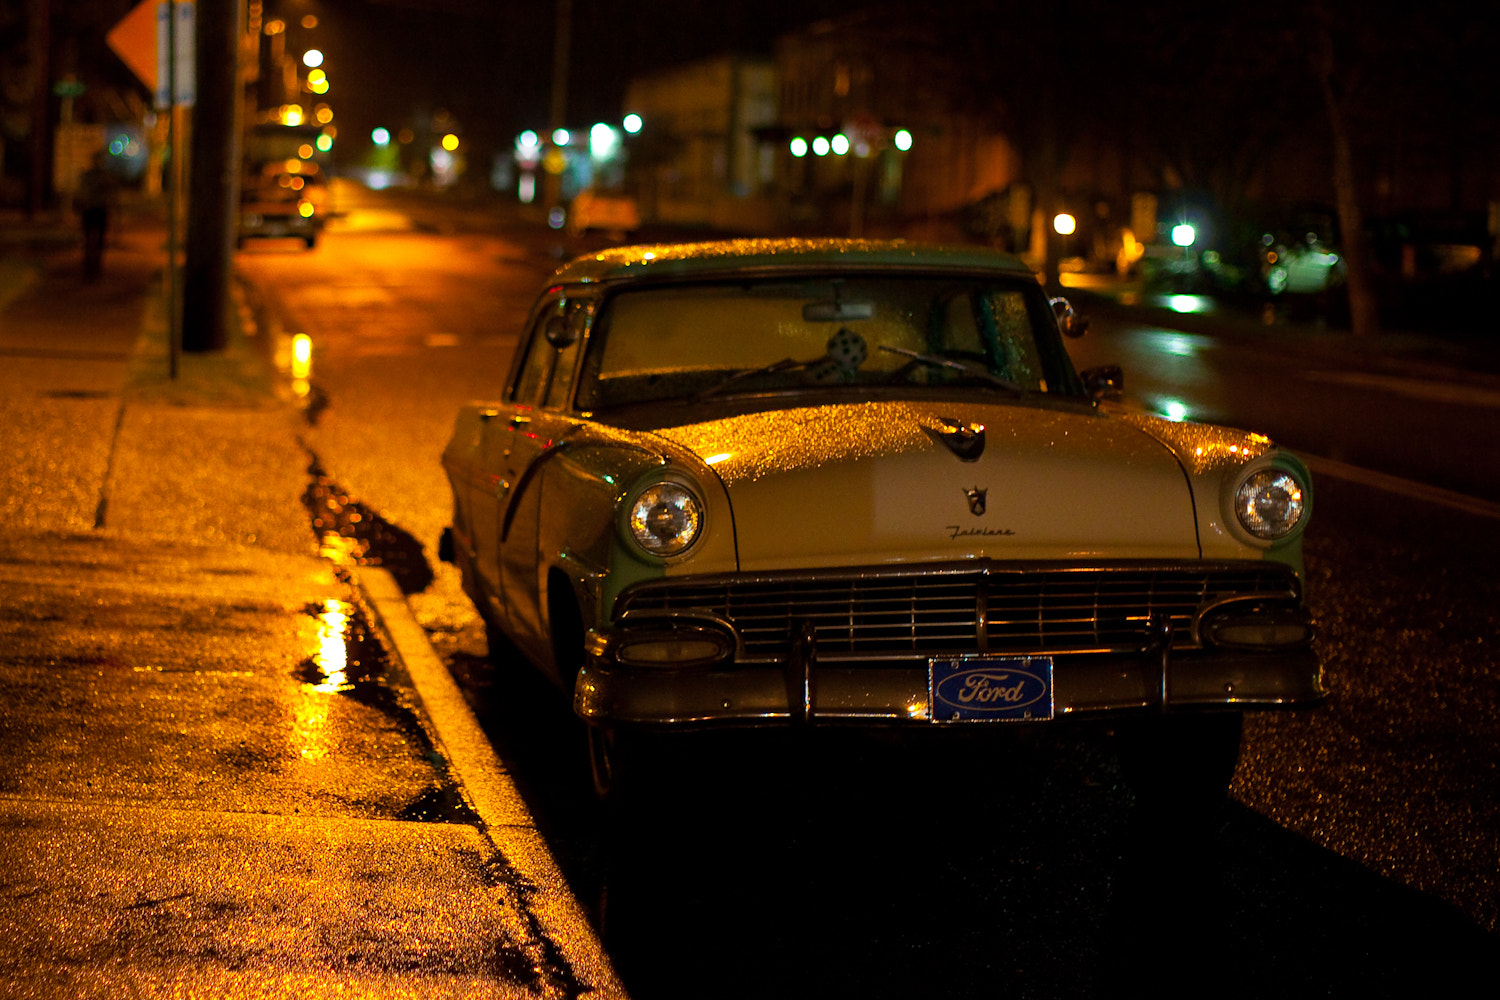 Photograph A Proper Car For A Night Out by Ryan Katsanes on 500px